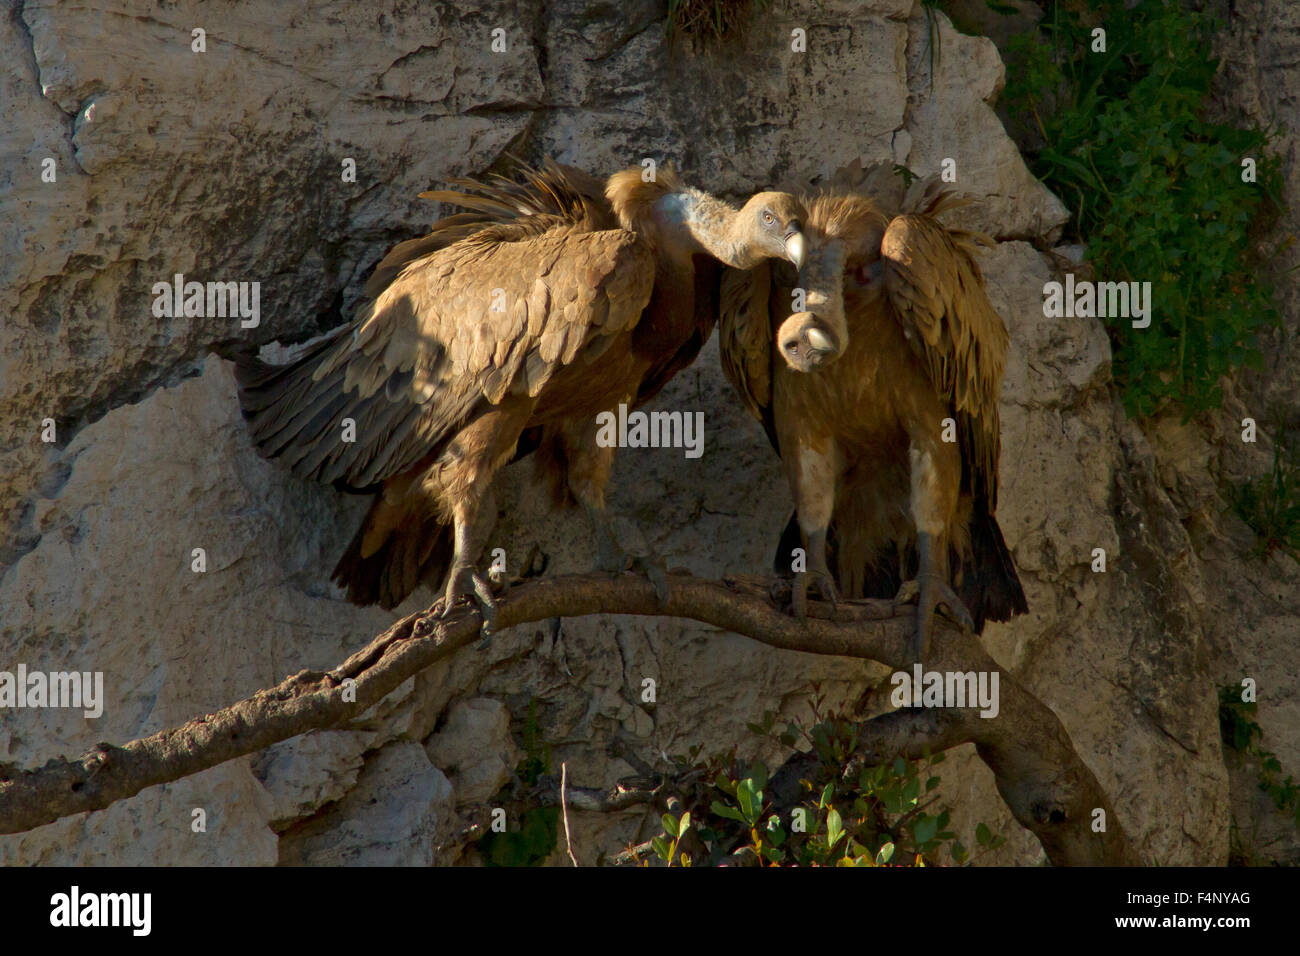 A pair of adult Eurasian Griffon Vultures sitting close together on a horizontal branch growing out of rock face - Stock Image